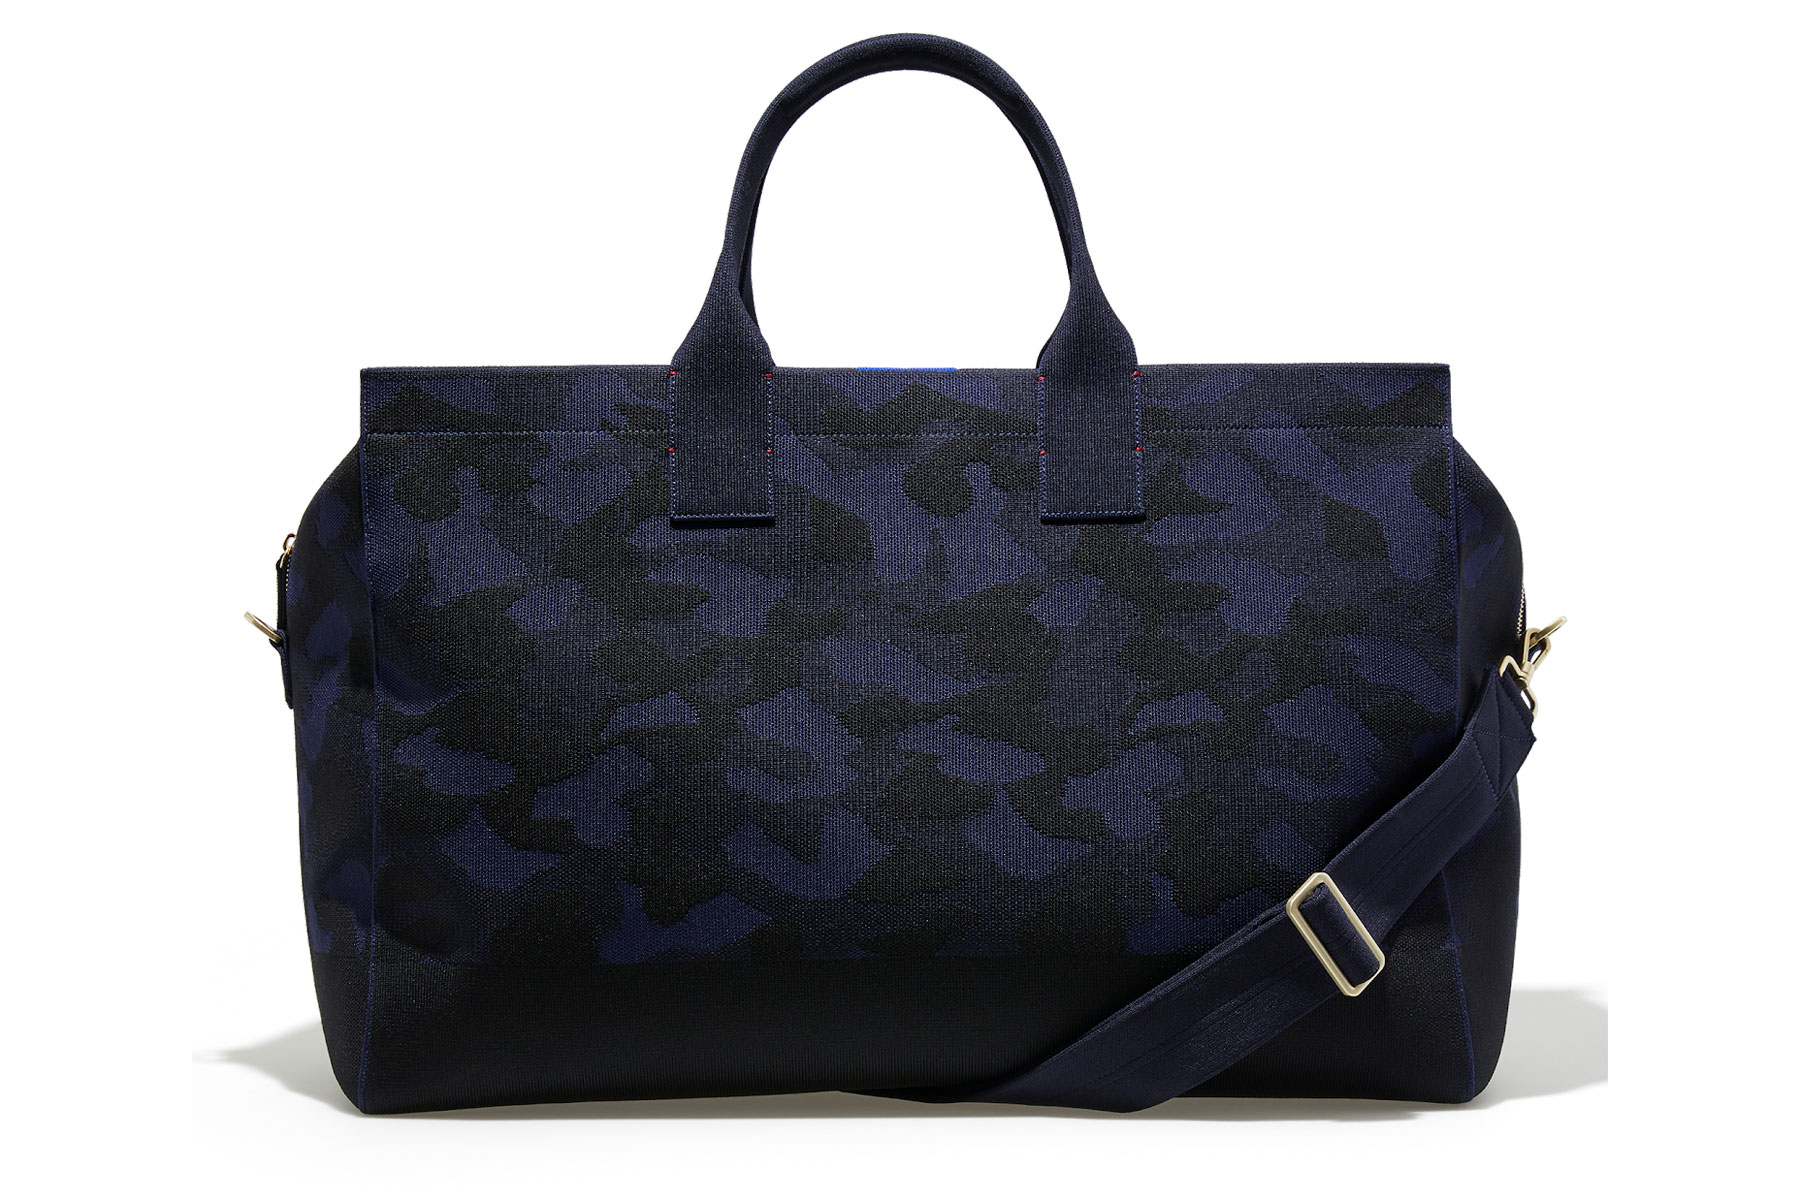 Black and navy camo weekender bag